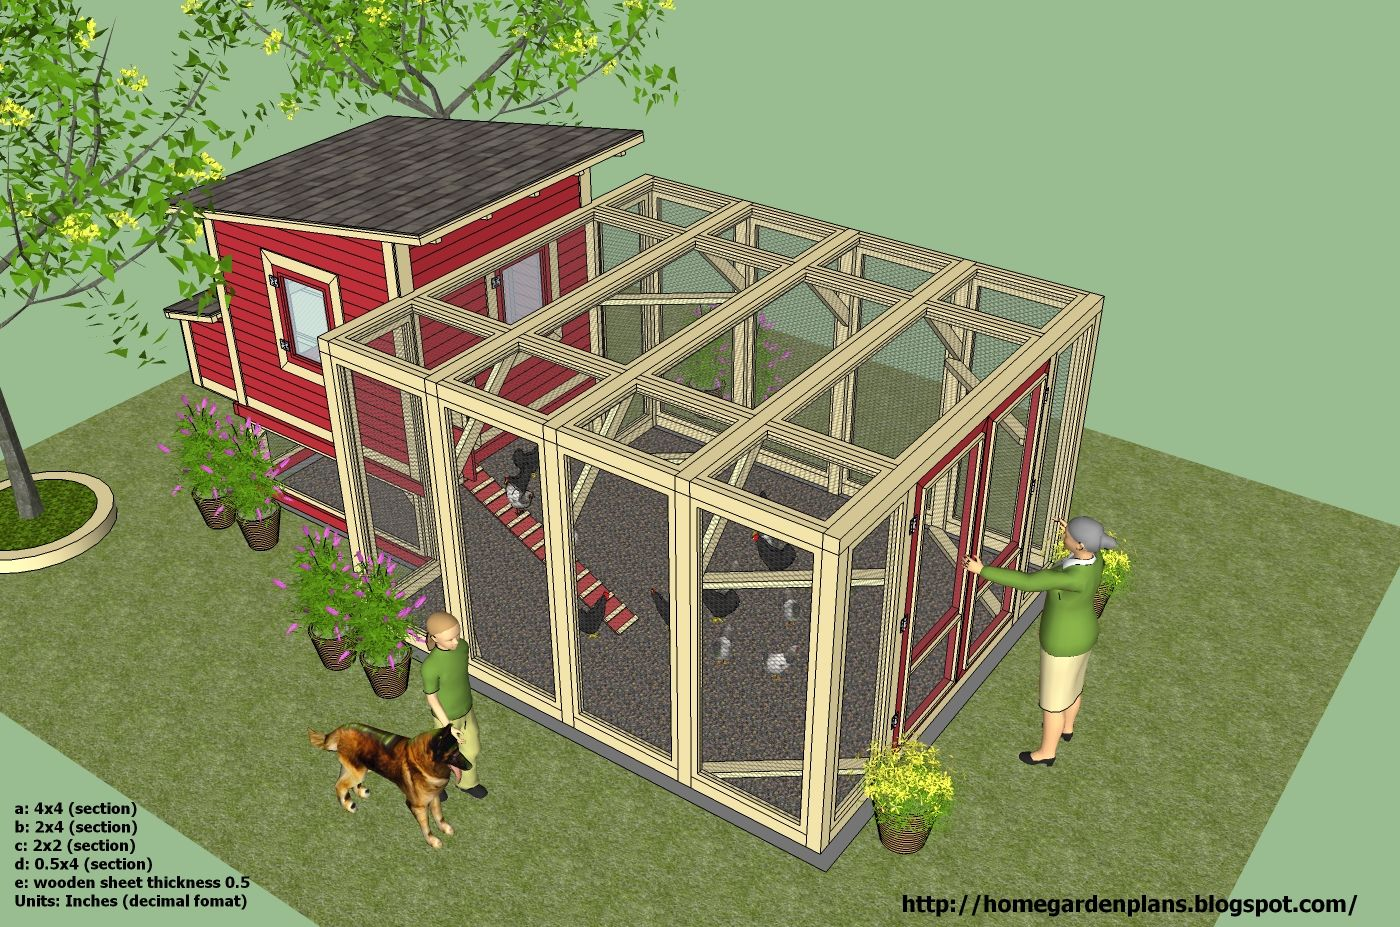 L100 Chicken Coop Plans How To Build A Chicken Coop Chickens Backyard Backyard Chicken Coops Building A Chicken Coop Backyard chicken coop diy plans